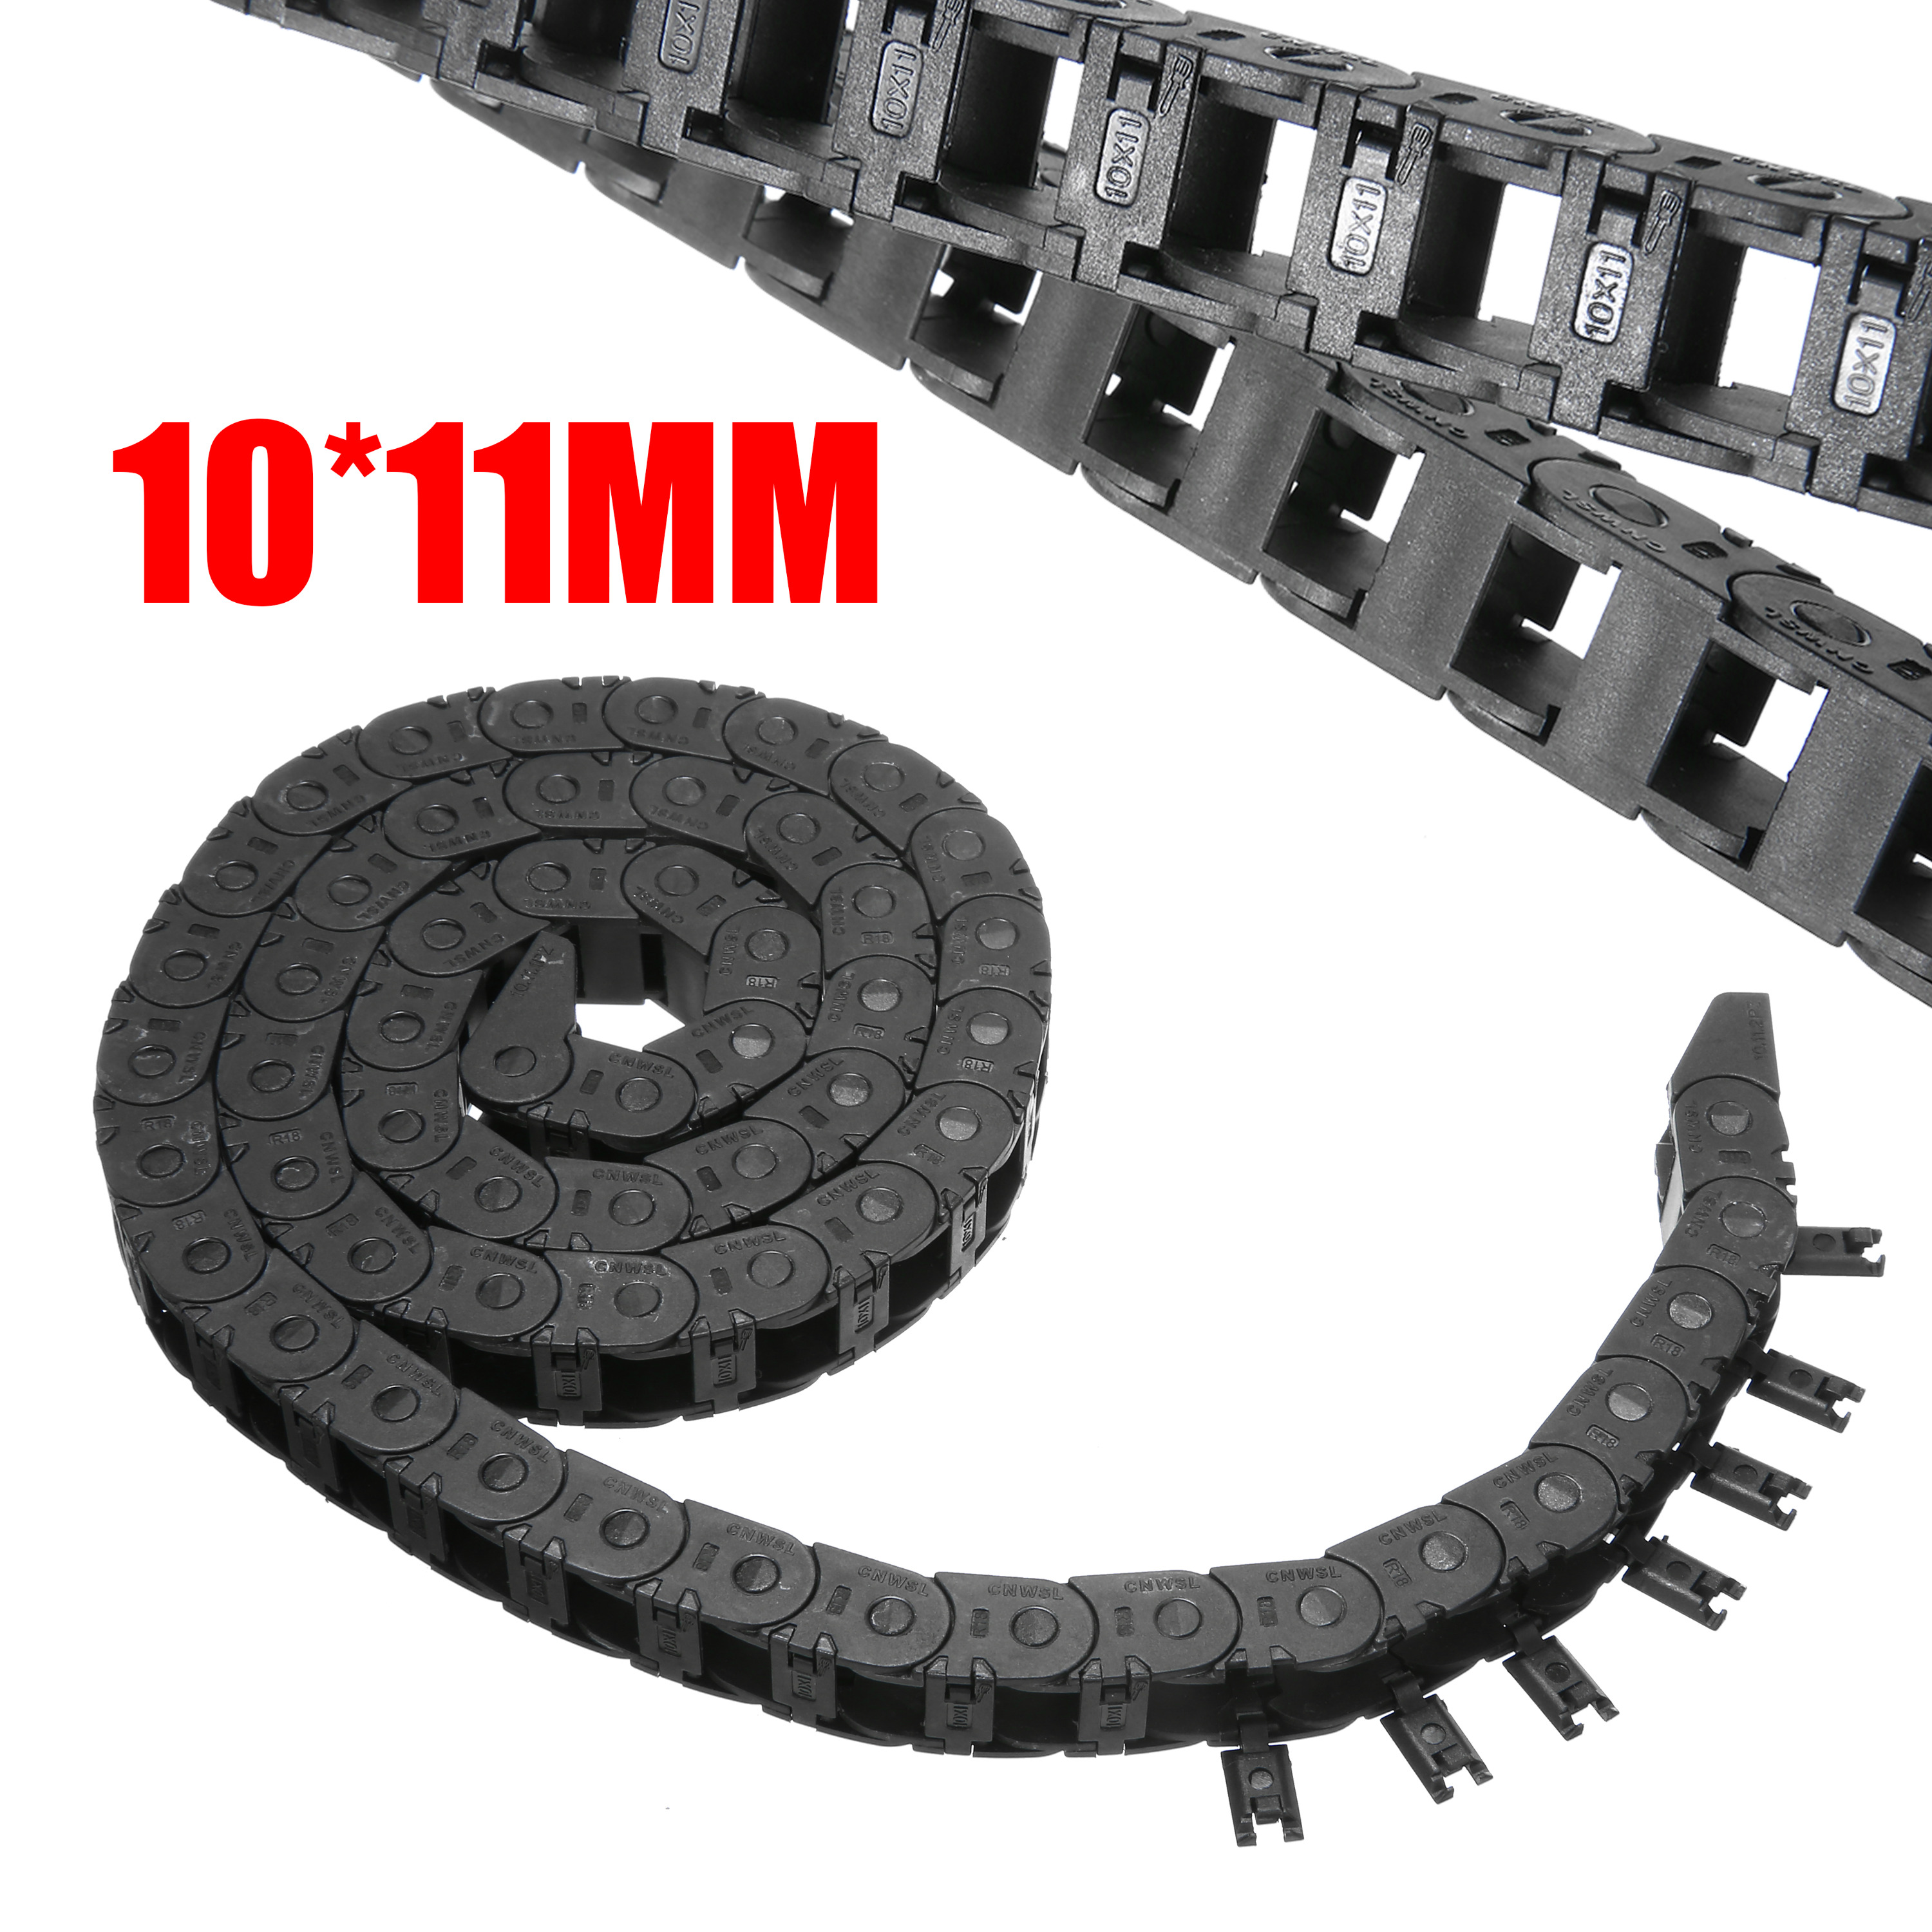 1Meter 7x7 10x10 10x20mm Nylon Chain Drag Cable Wire Carrier For CNC 3D Printer